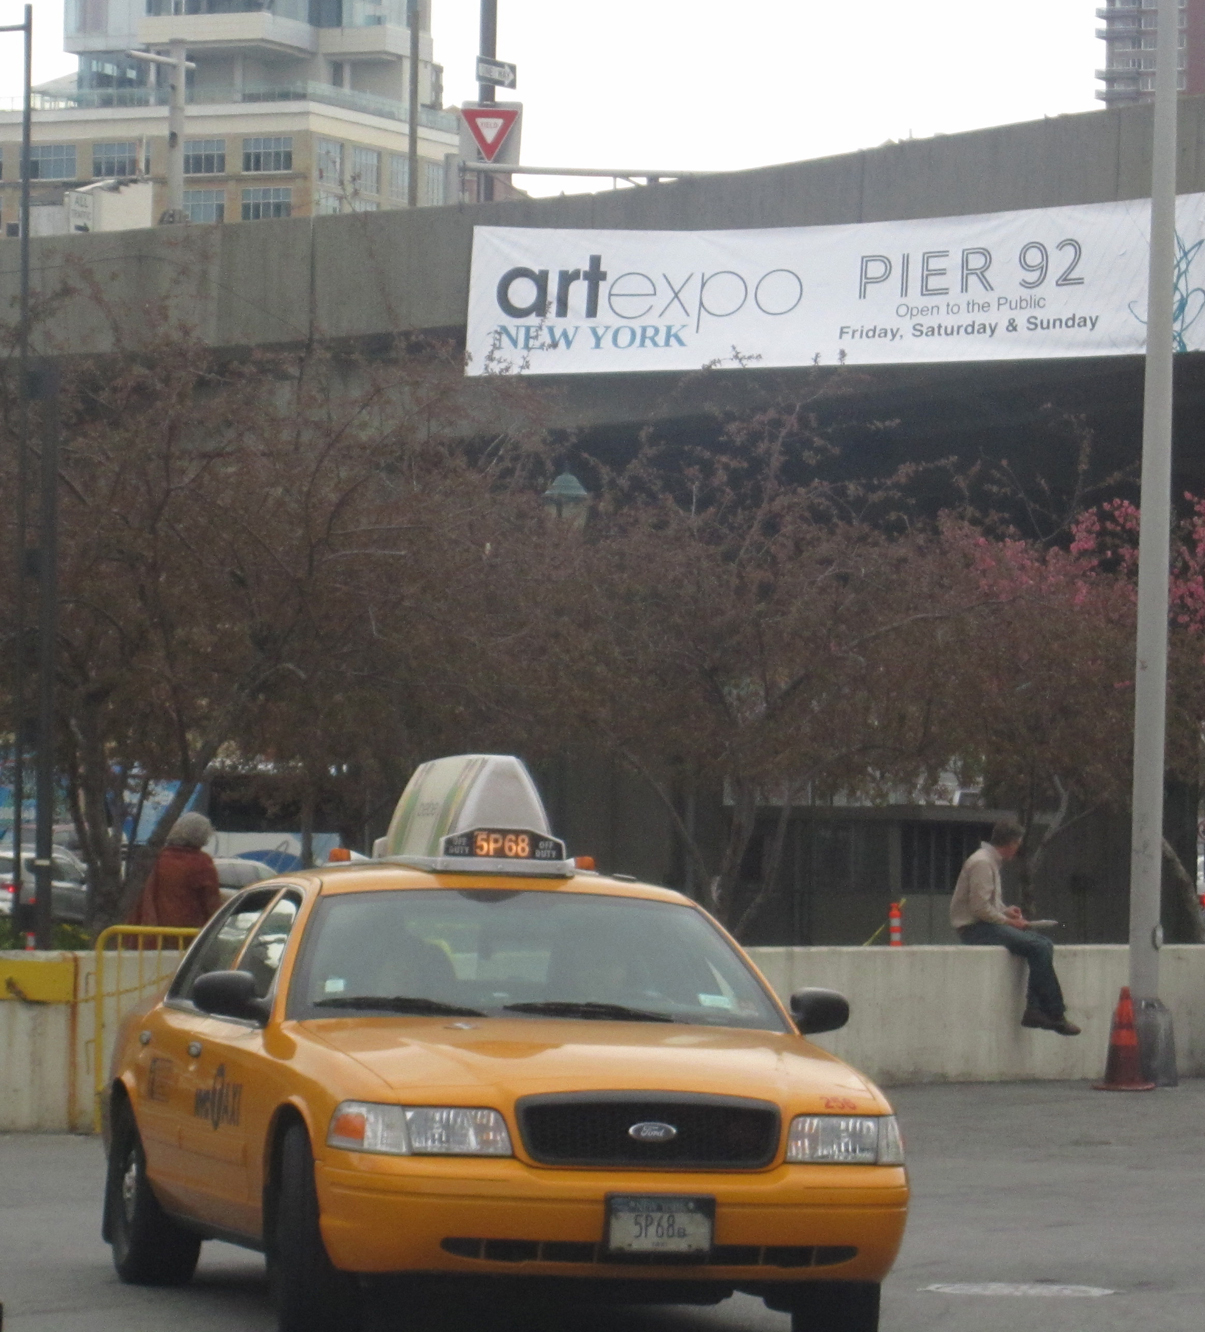 Home Design Show Pier 92 Part - 46: The Show Covers Wide Range Of Categories : Home Furnishings, Accessories,  Art U0026 Antiques, Kitchen And Bath Products, Flooring, Fabric, Lighting, ...